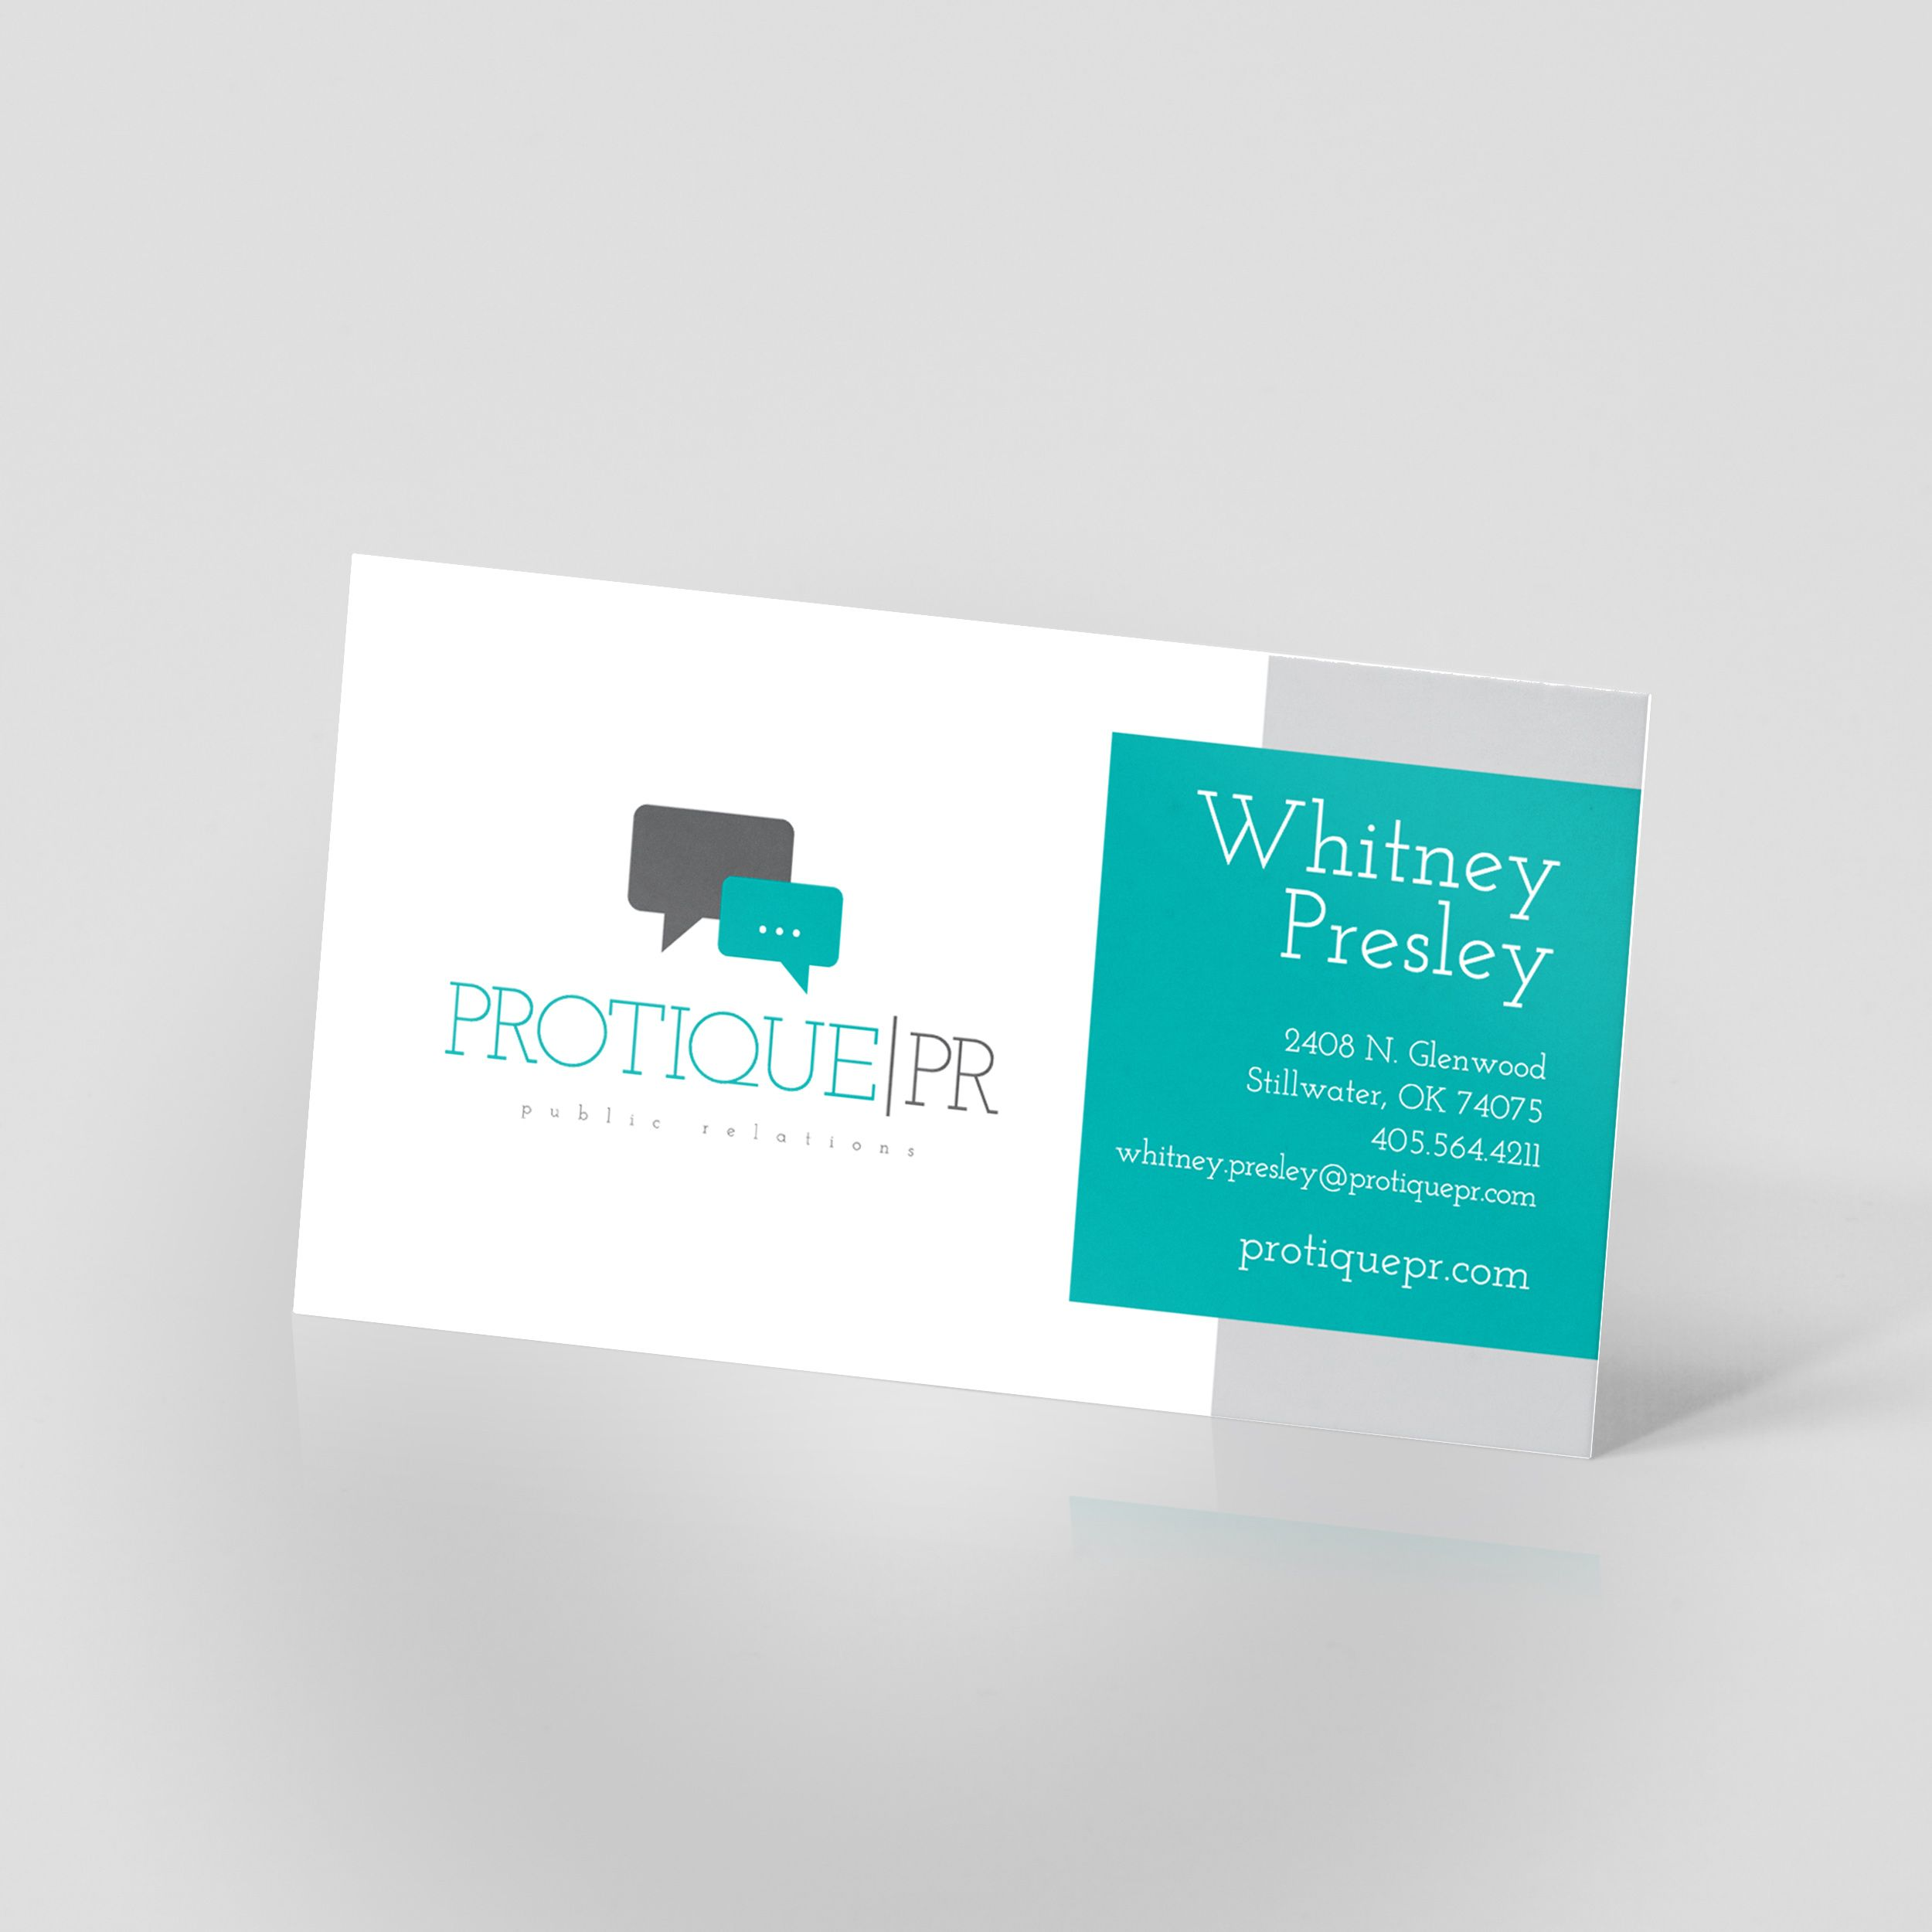 Create Your Own Business Cards With Our Card Printing